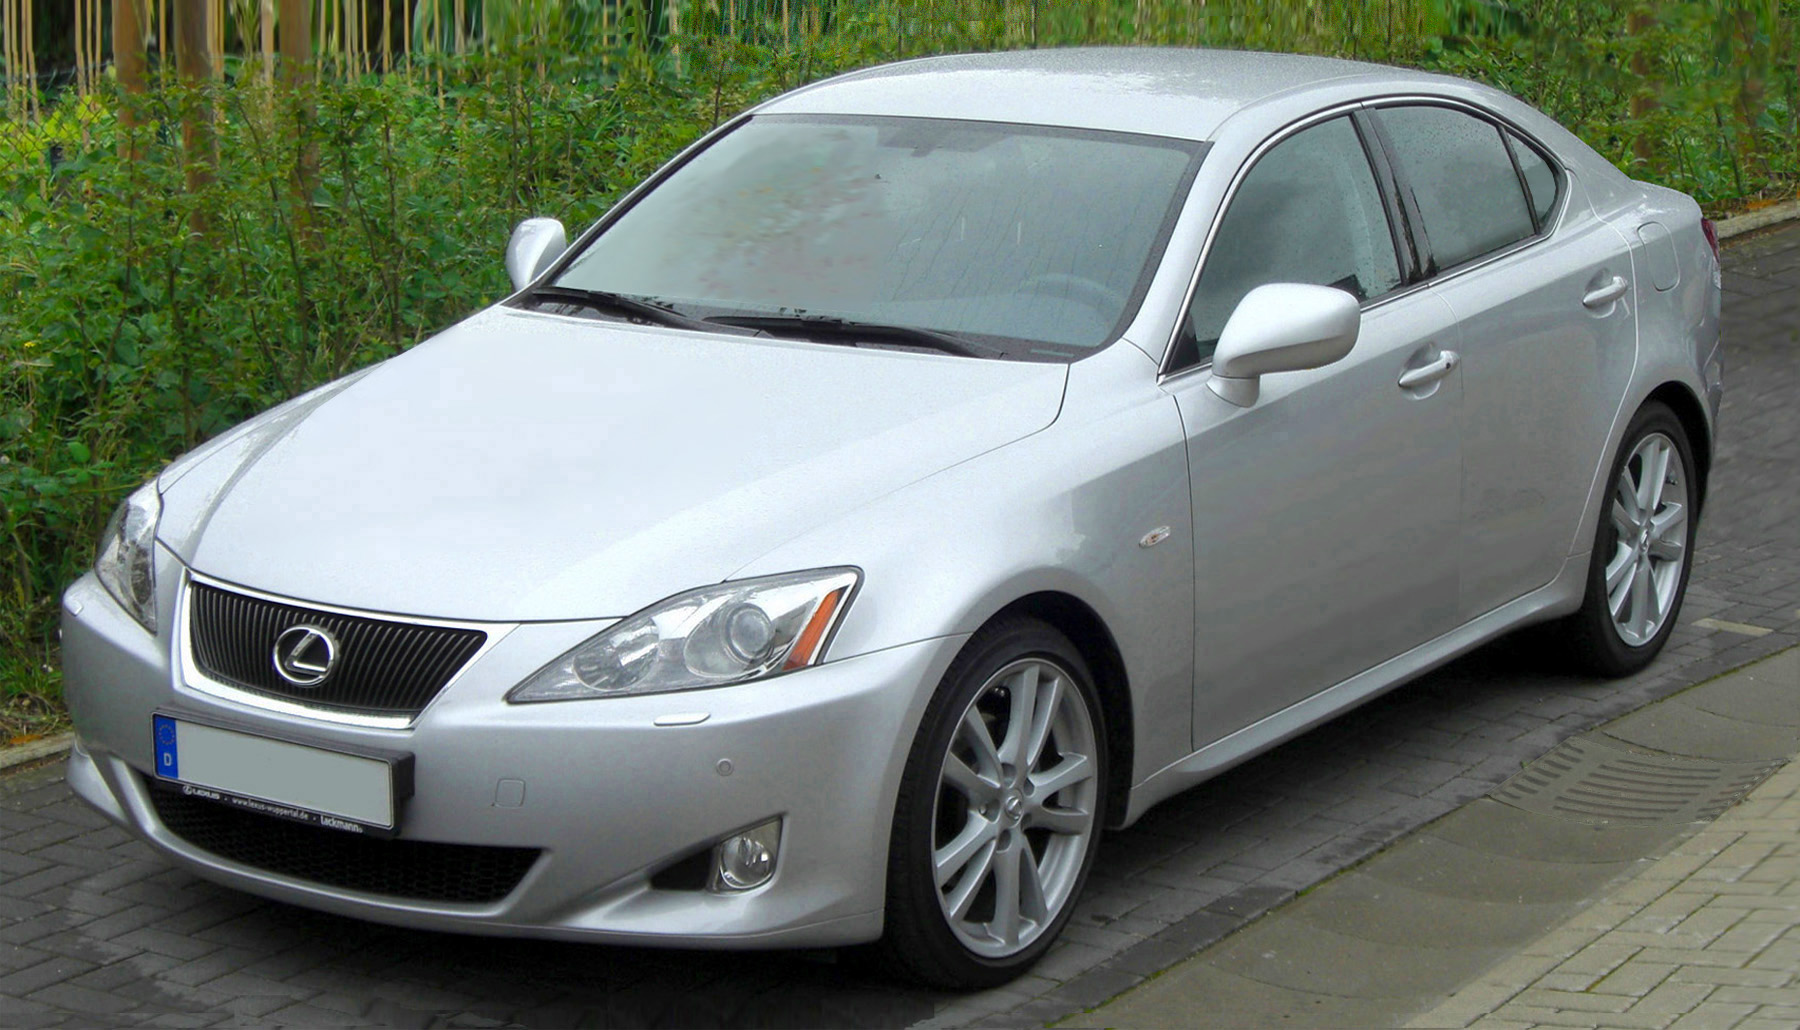 Lexus IS250 2008 Tungsten Pearl Wallpaper Backgrounds